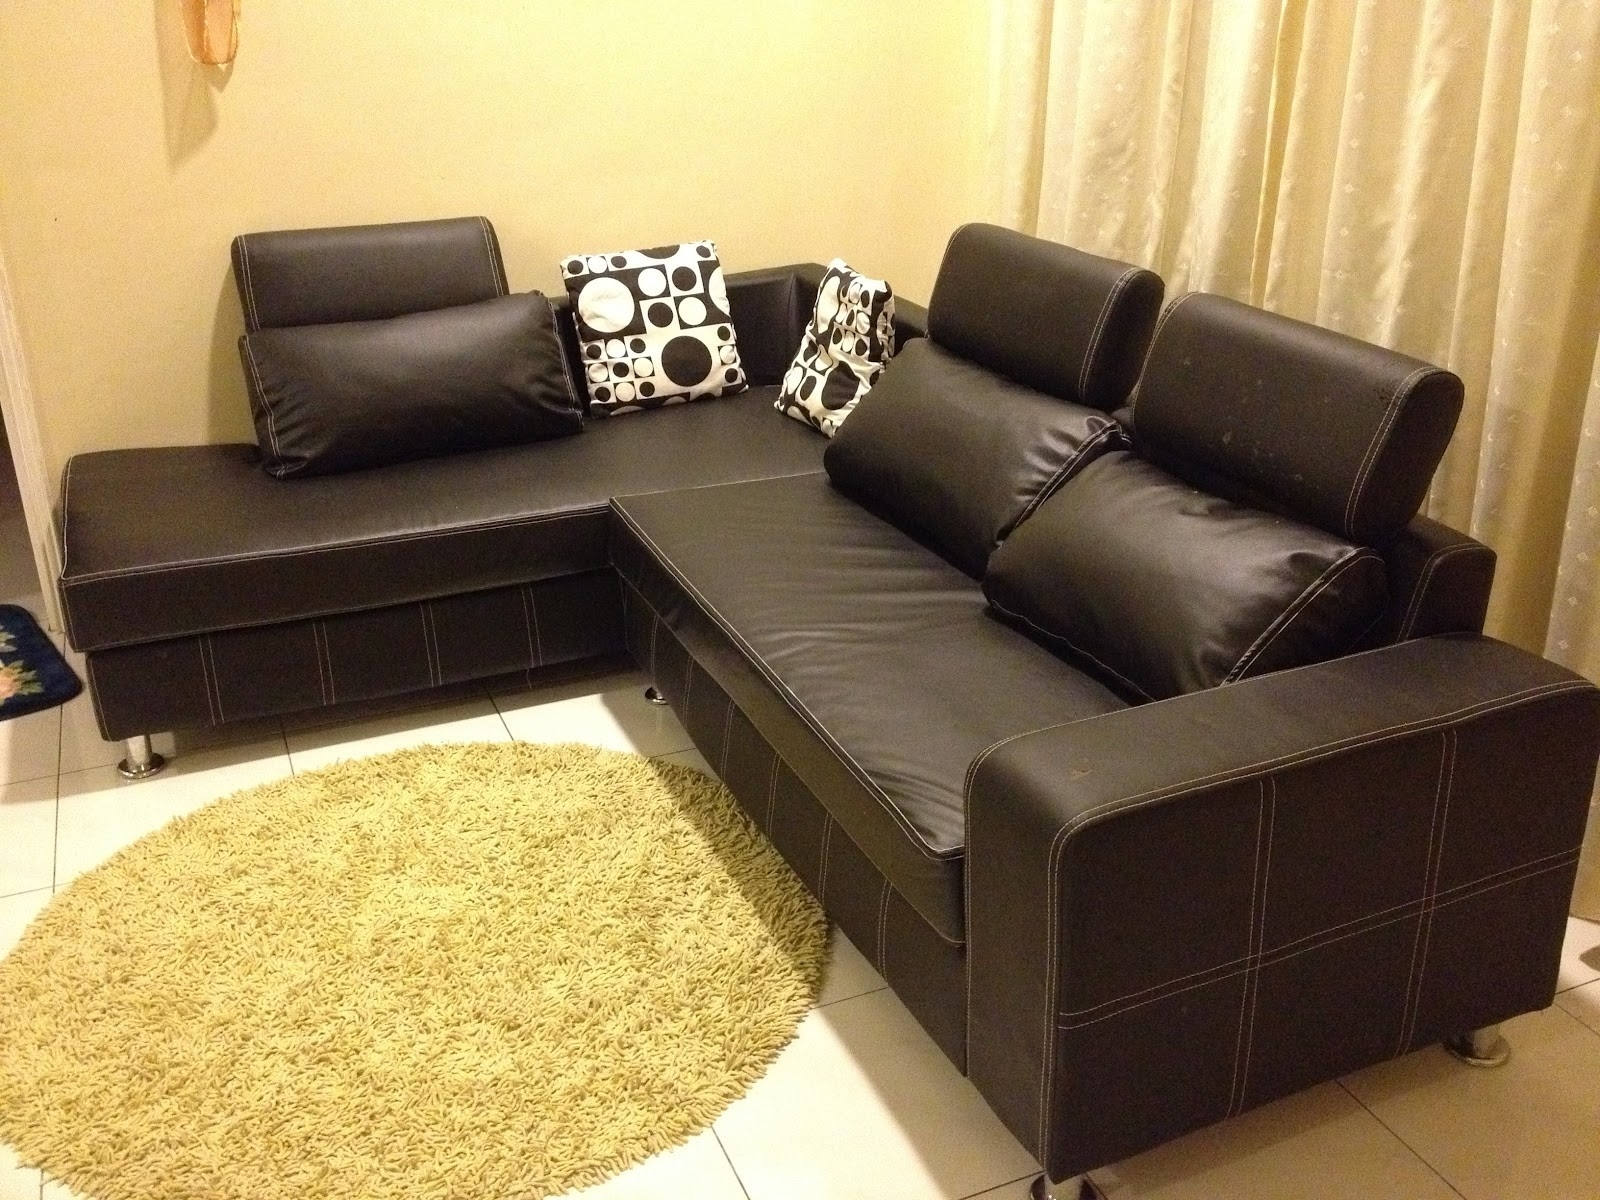 Widely Used Sofa : Used Sectional Sofas Por Oversized Sectional Sofa With For Used Sectional Sofas (View 20 of 20)